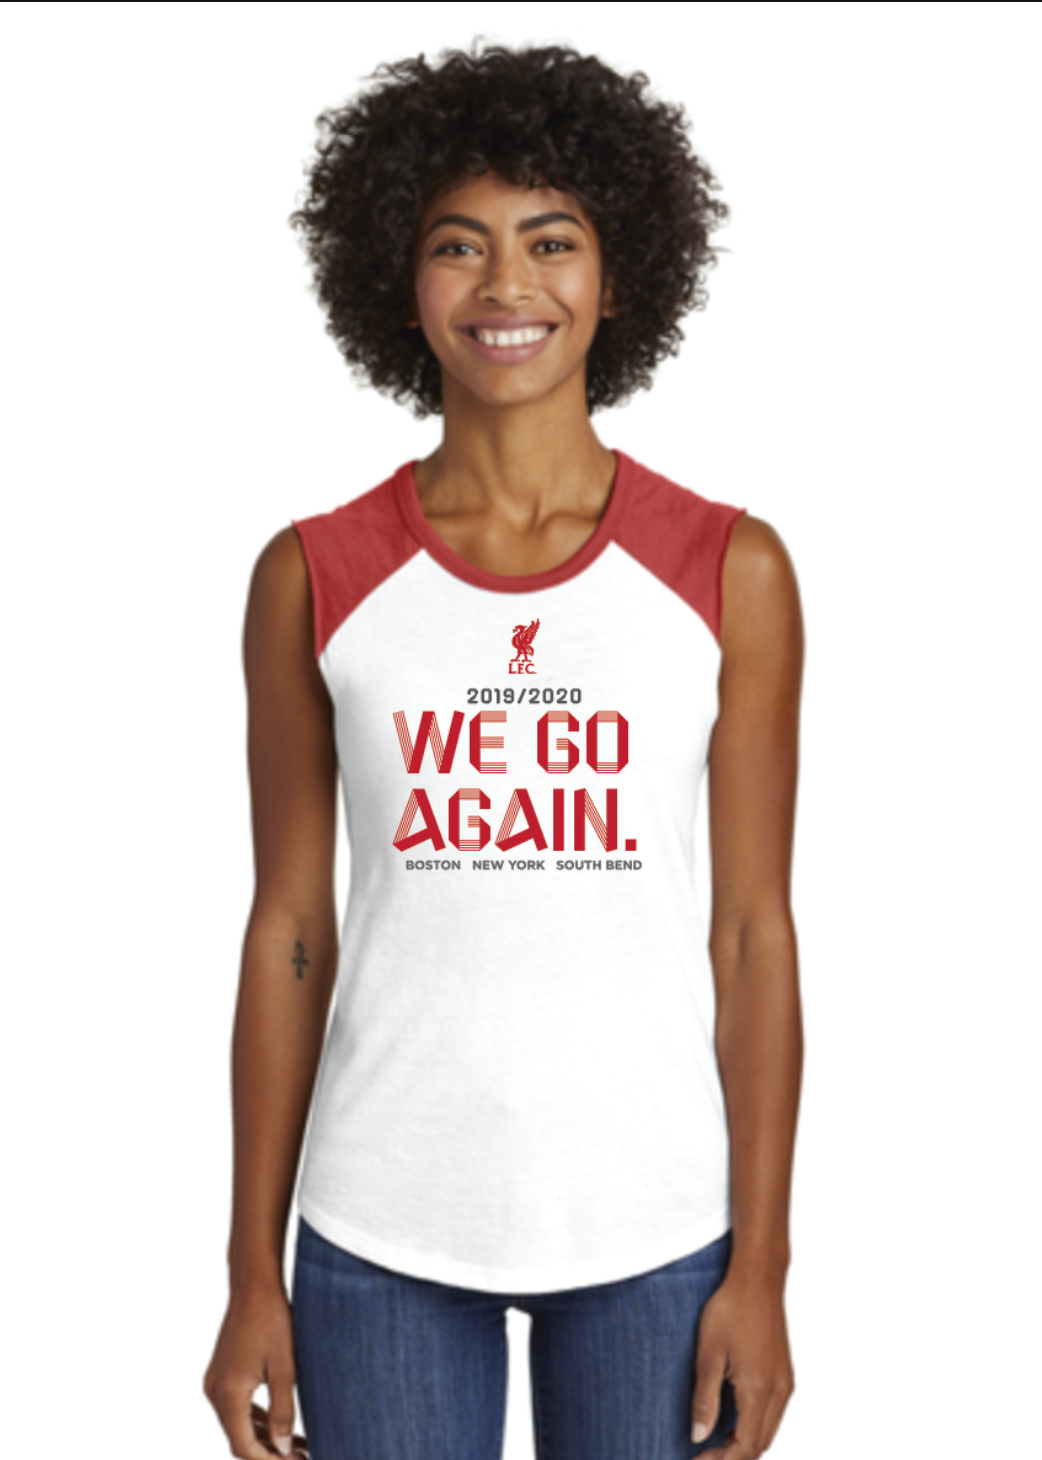 LFC Ladies We Go Again Sleeveless Raglan